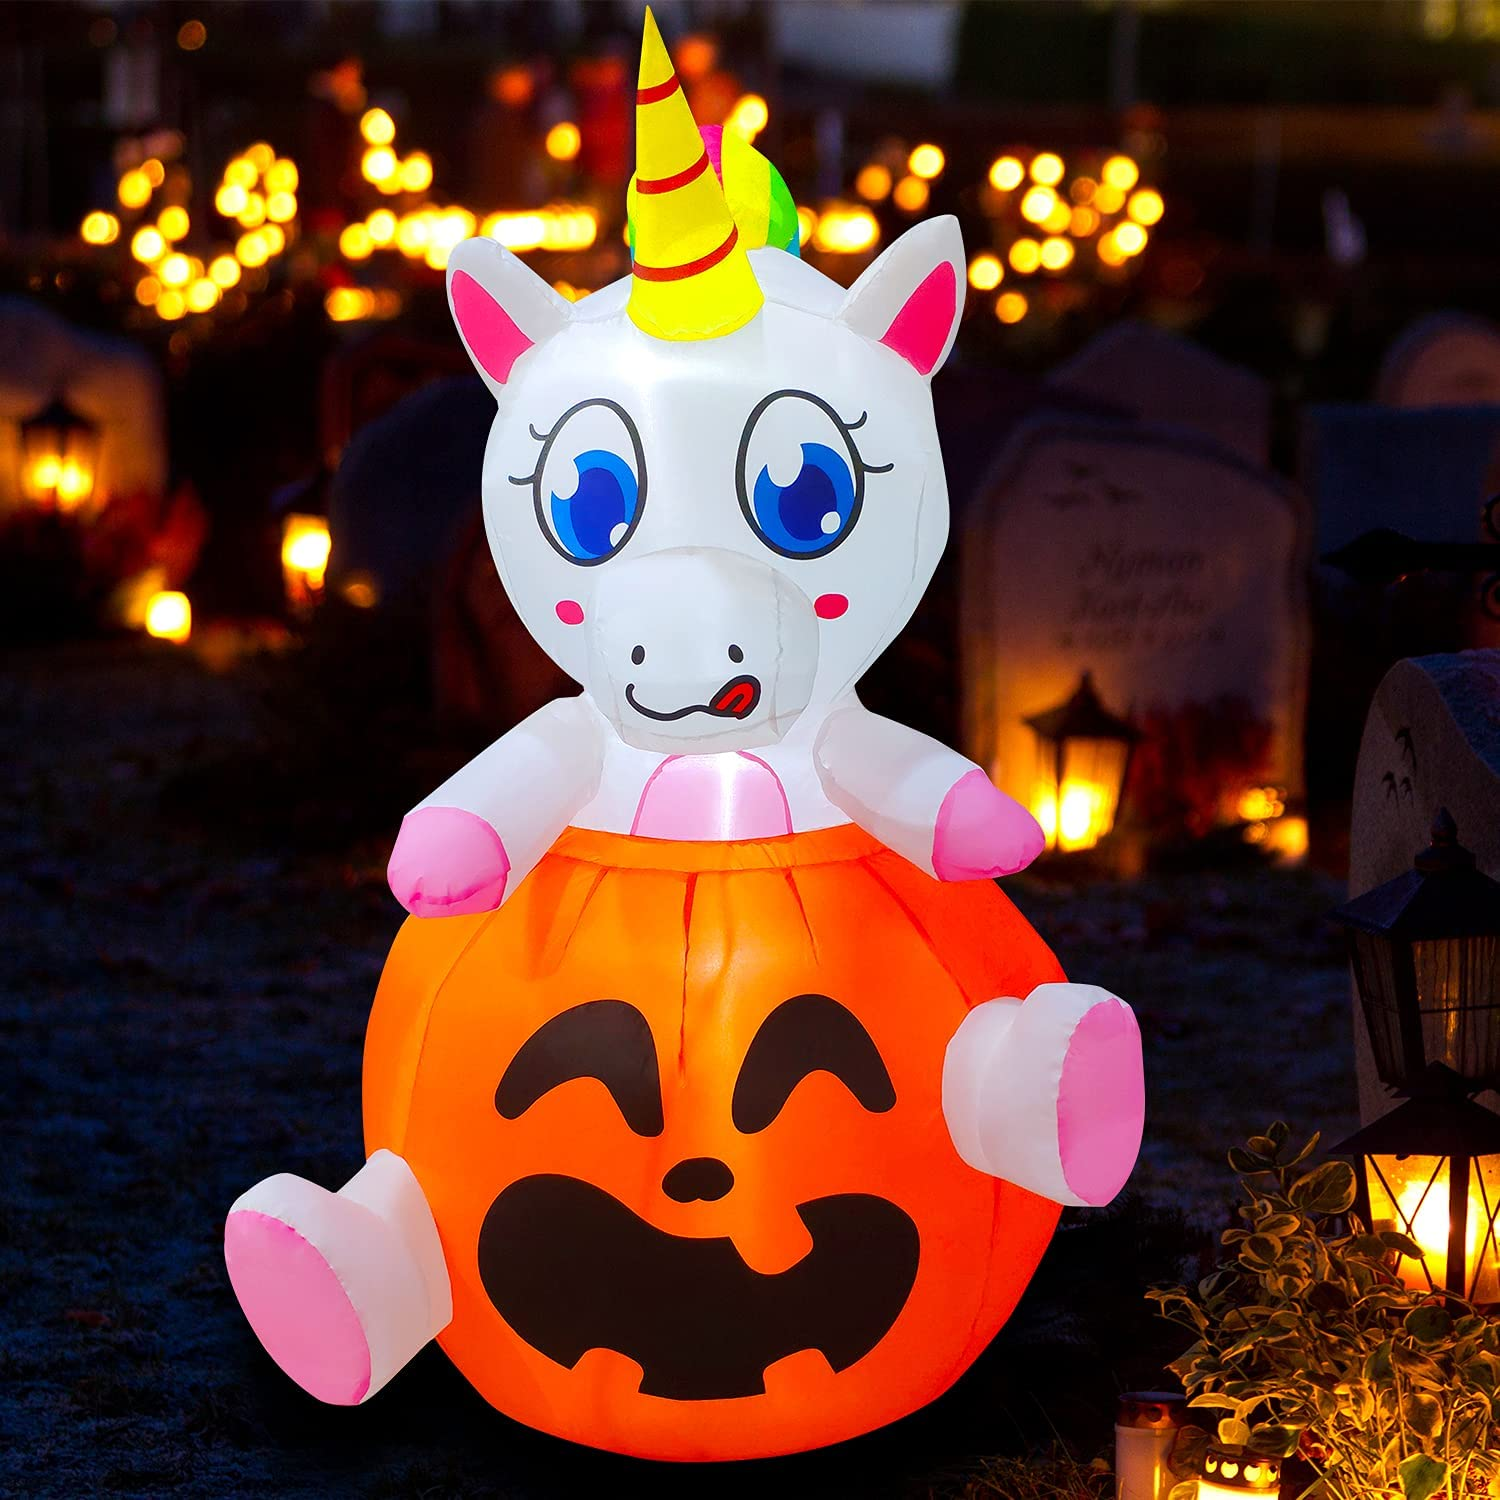 SEASONBLOW 5 Ft Halloween Inflatable Unicorn in Pumpkins Decoration Blow up Decor for Lawn Patio Indoor Outdoor Home Yard Party